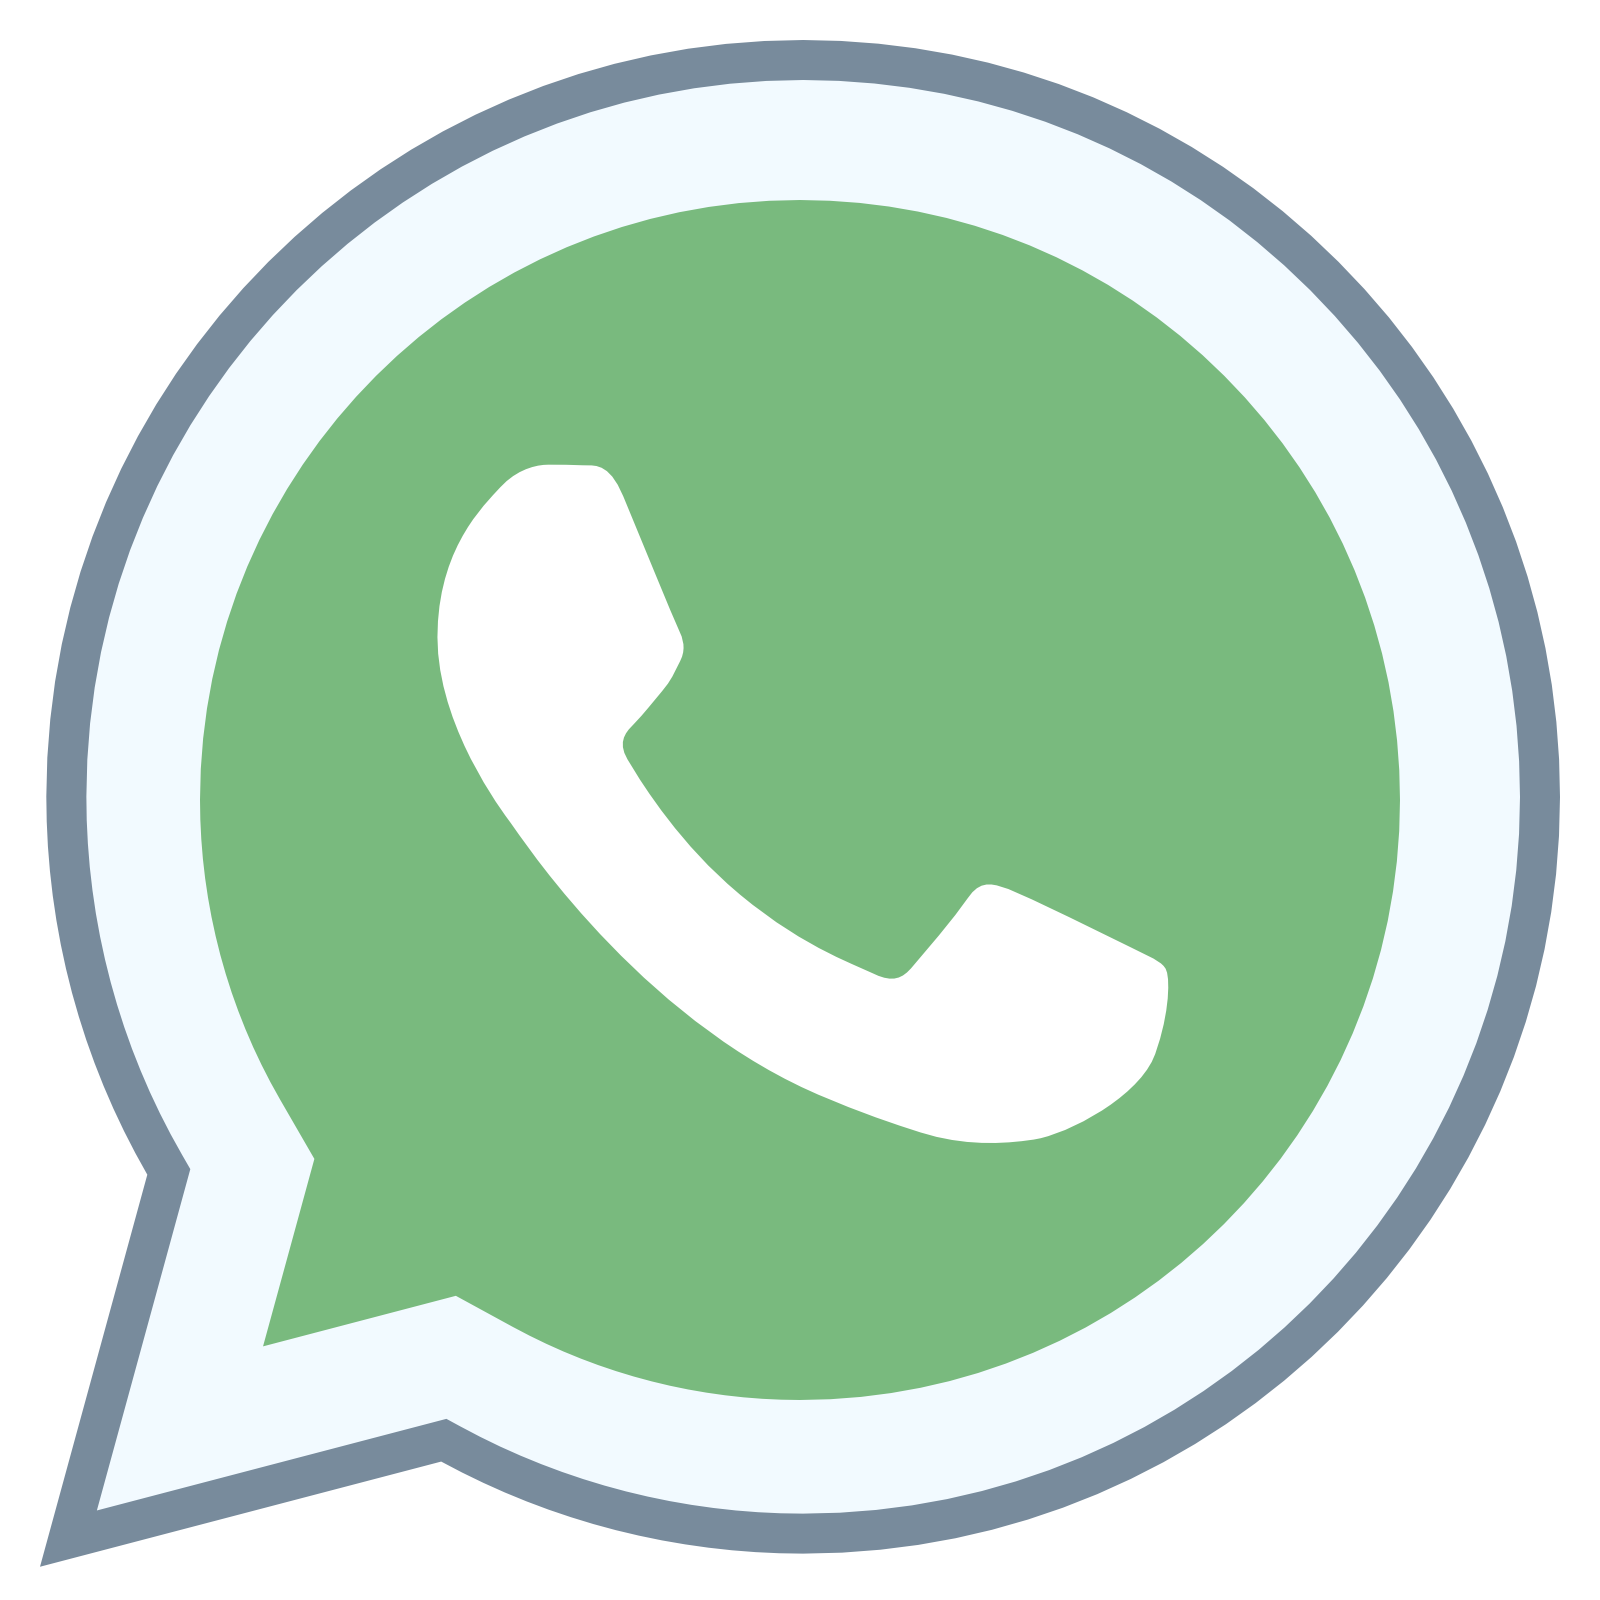 Whatsapp HD PNG Transparent Whatsapp HD.PNG Images. | PlusPNG